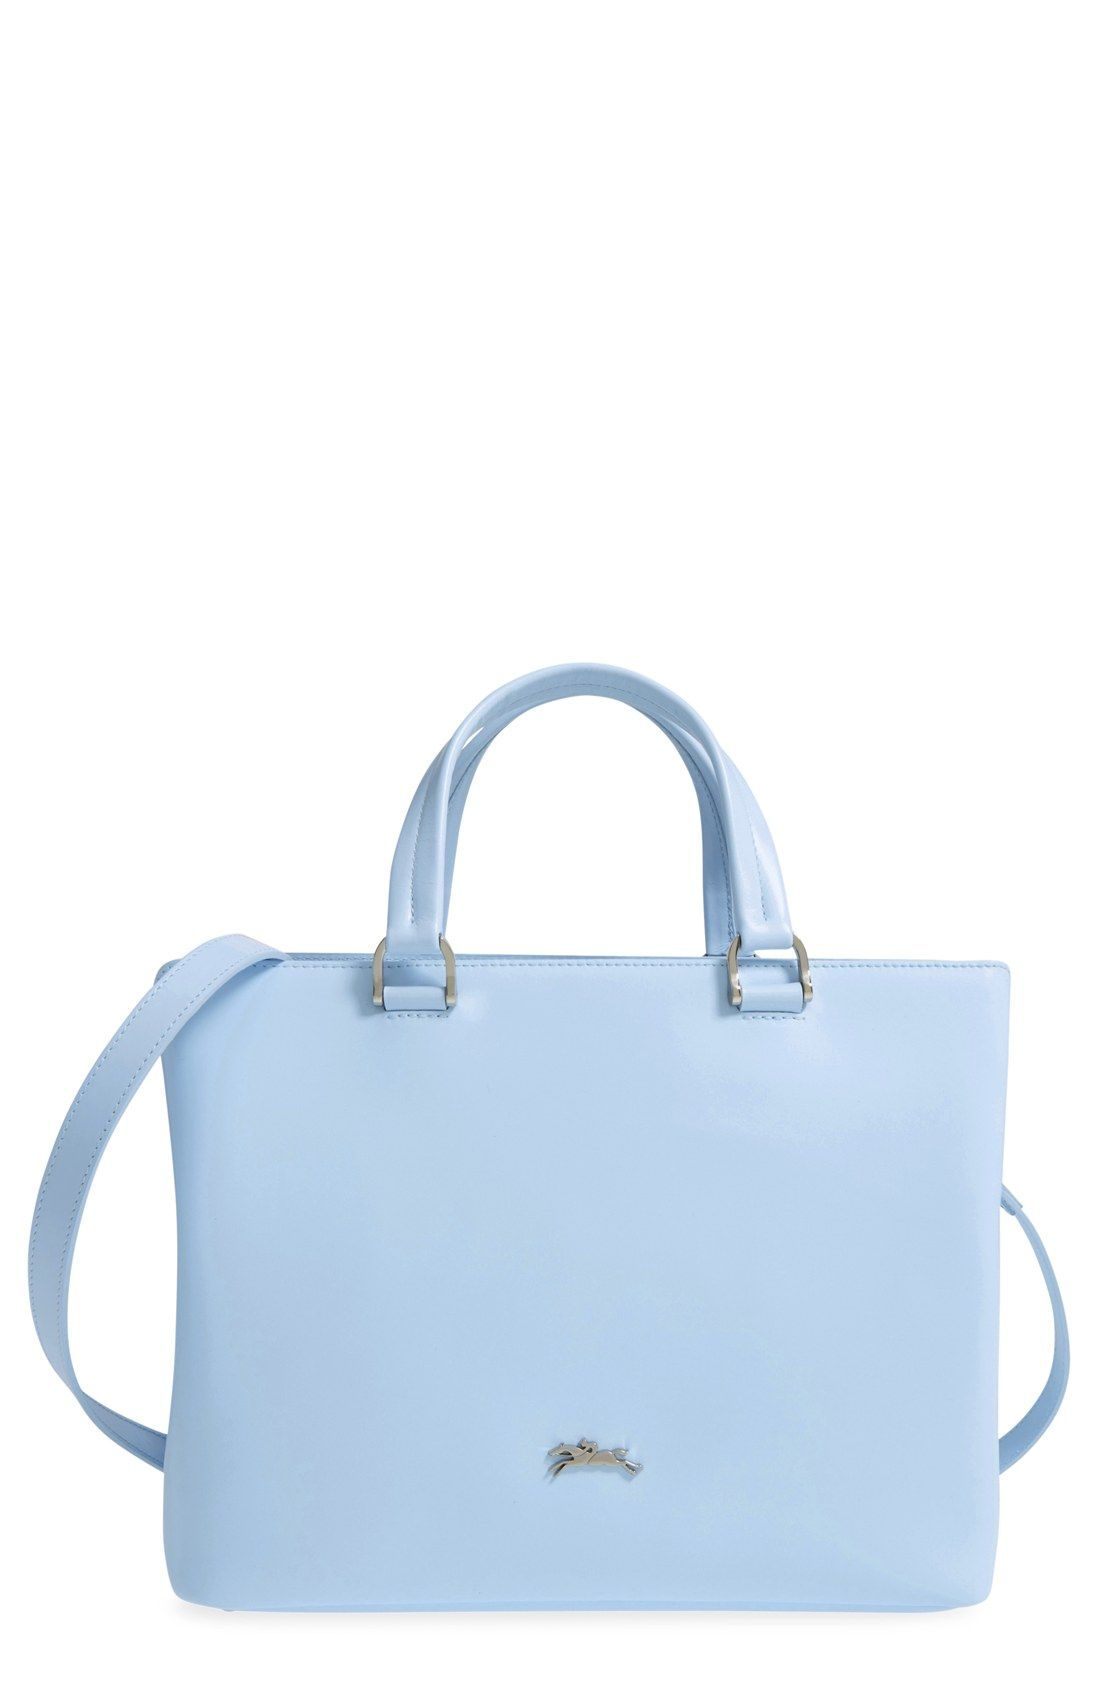 a7aec94cbd08 Such a pretty color! This tote from Longchamp boasts pale blue leather